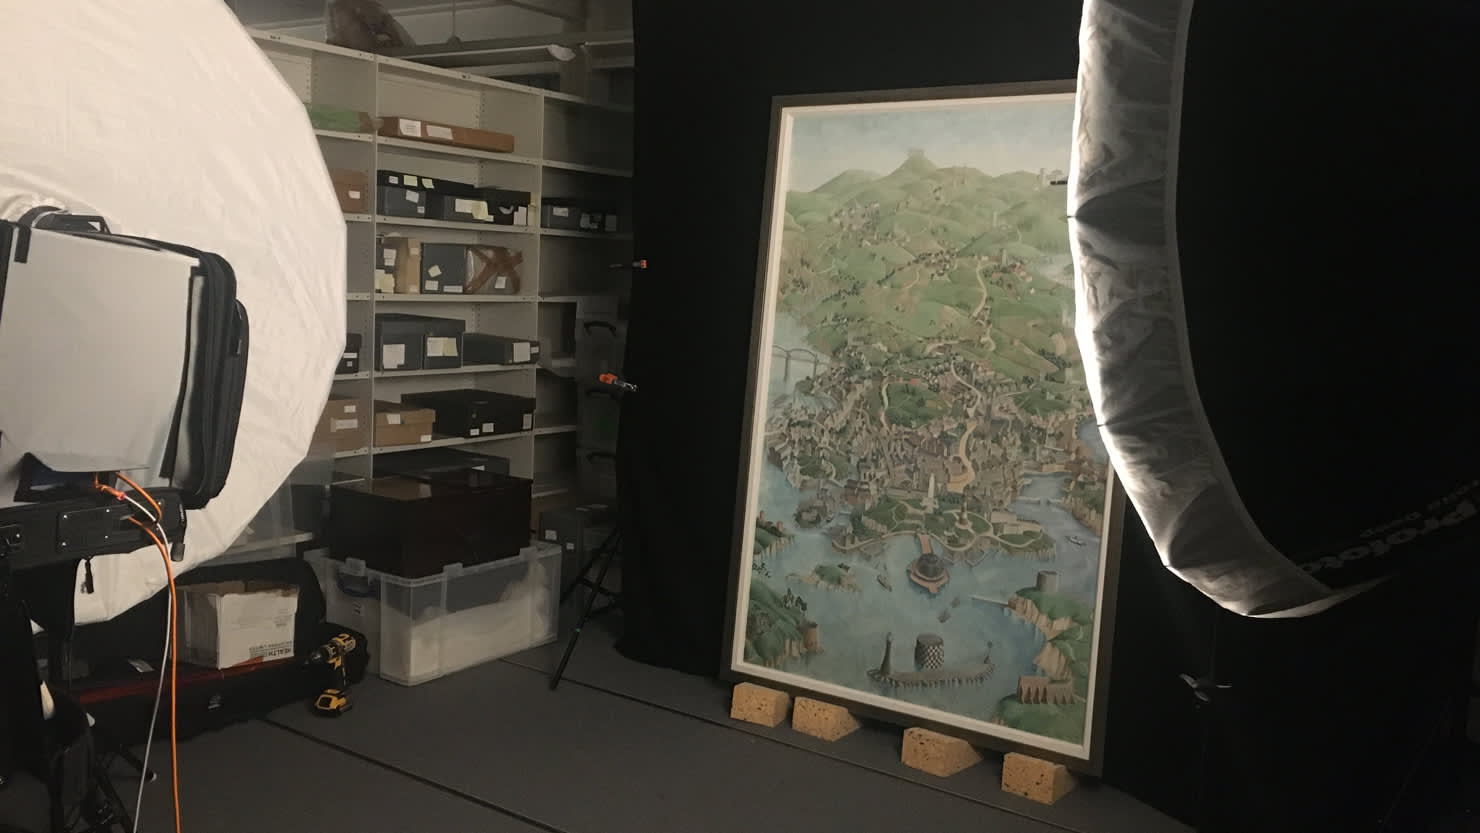 Dorothy Ward work undergoing conservation at The Box